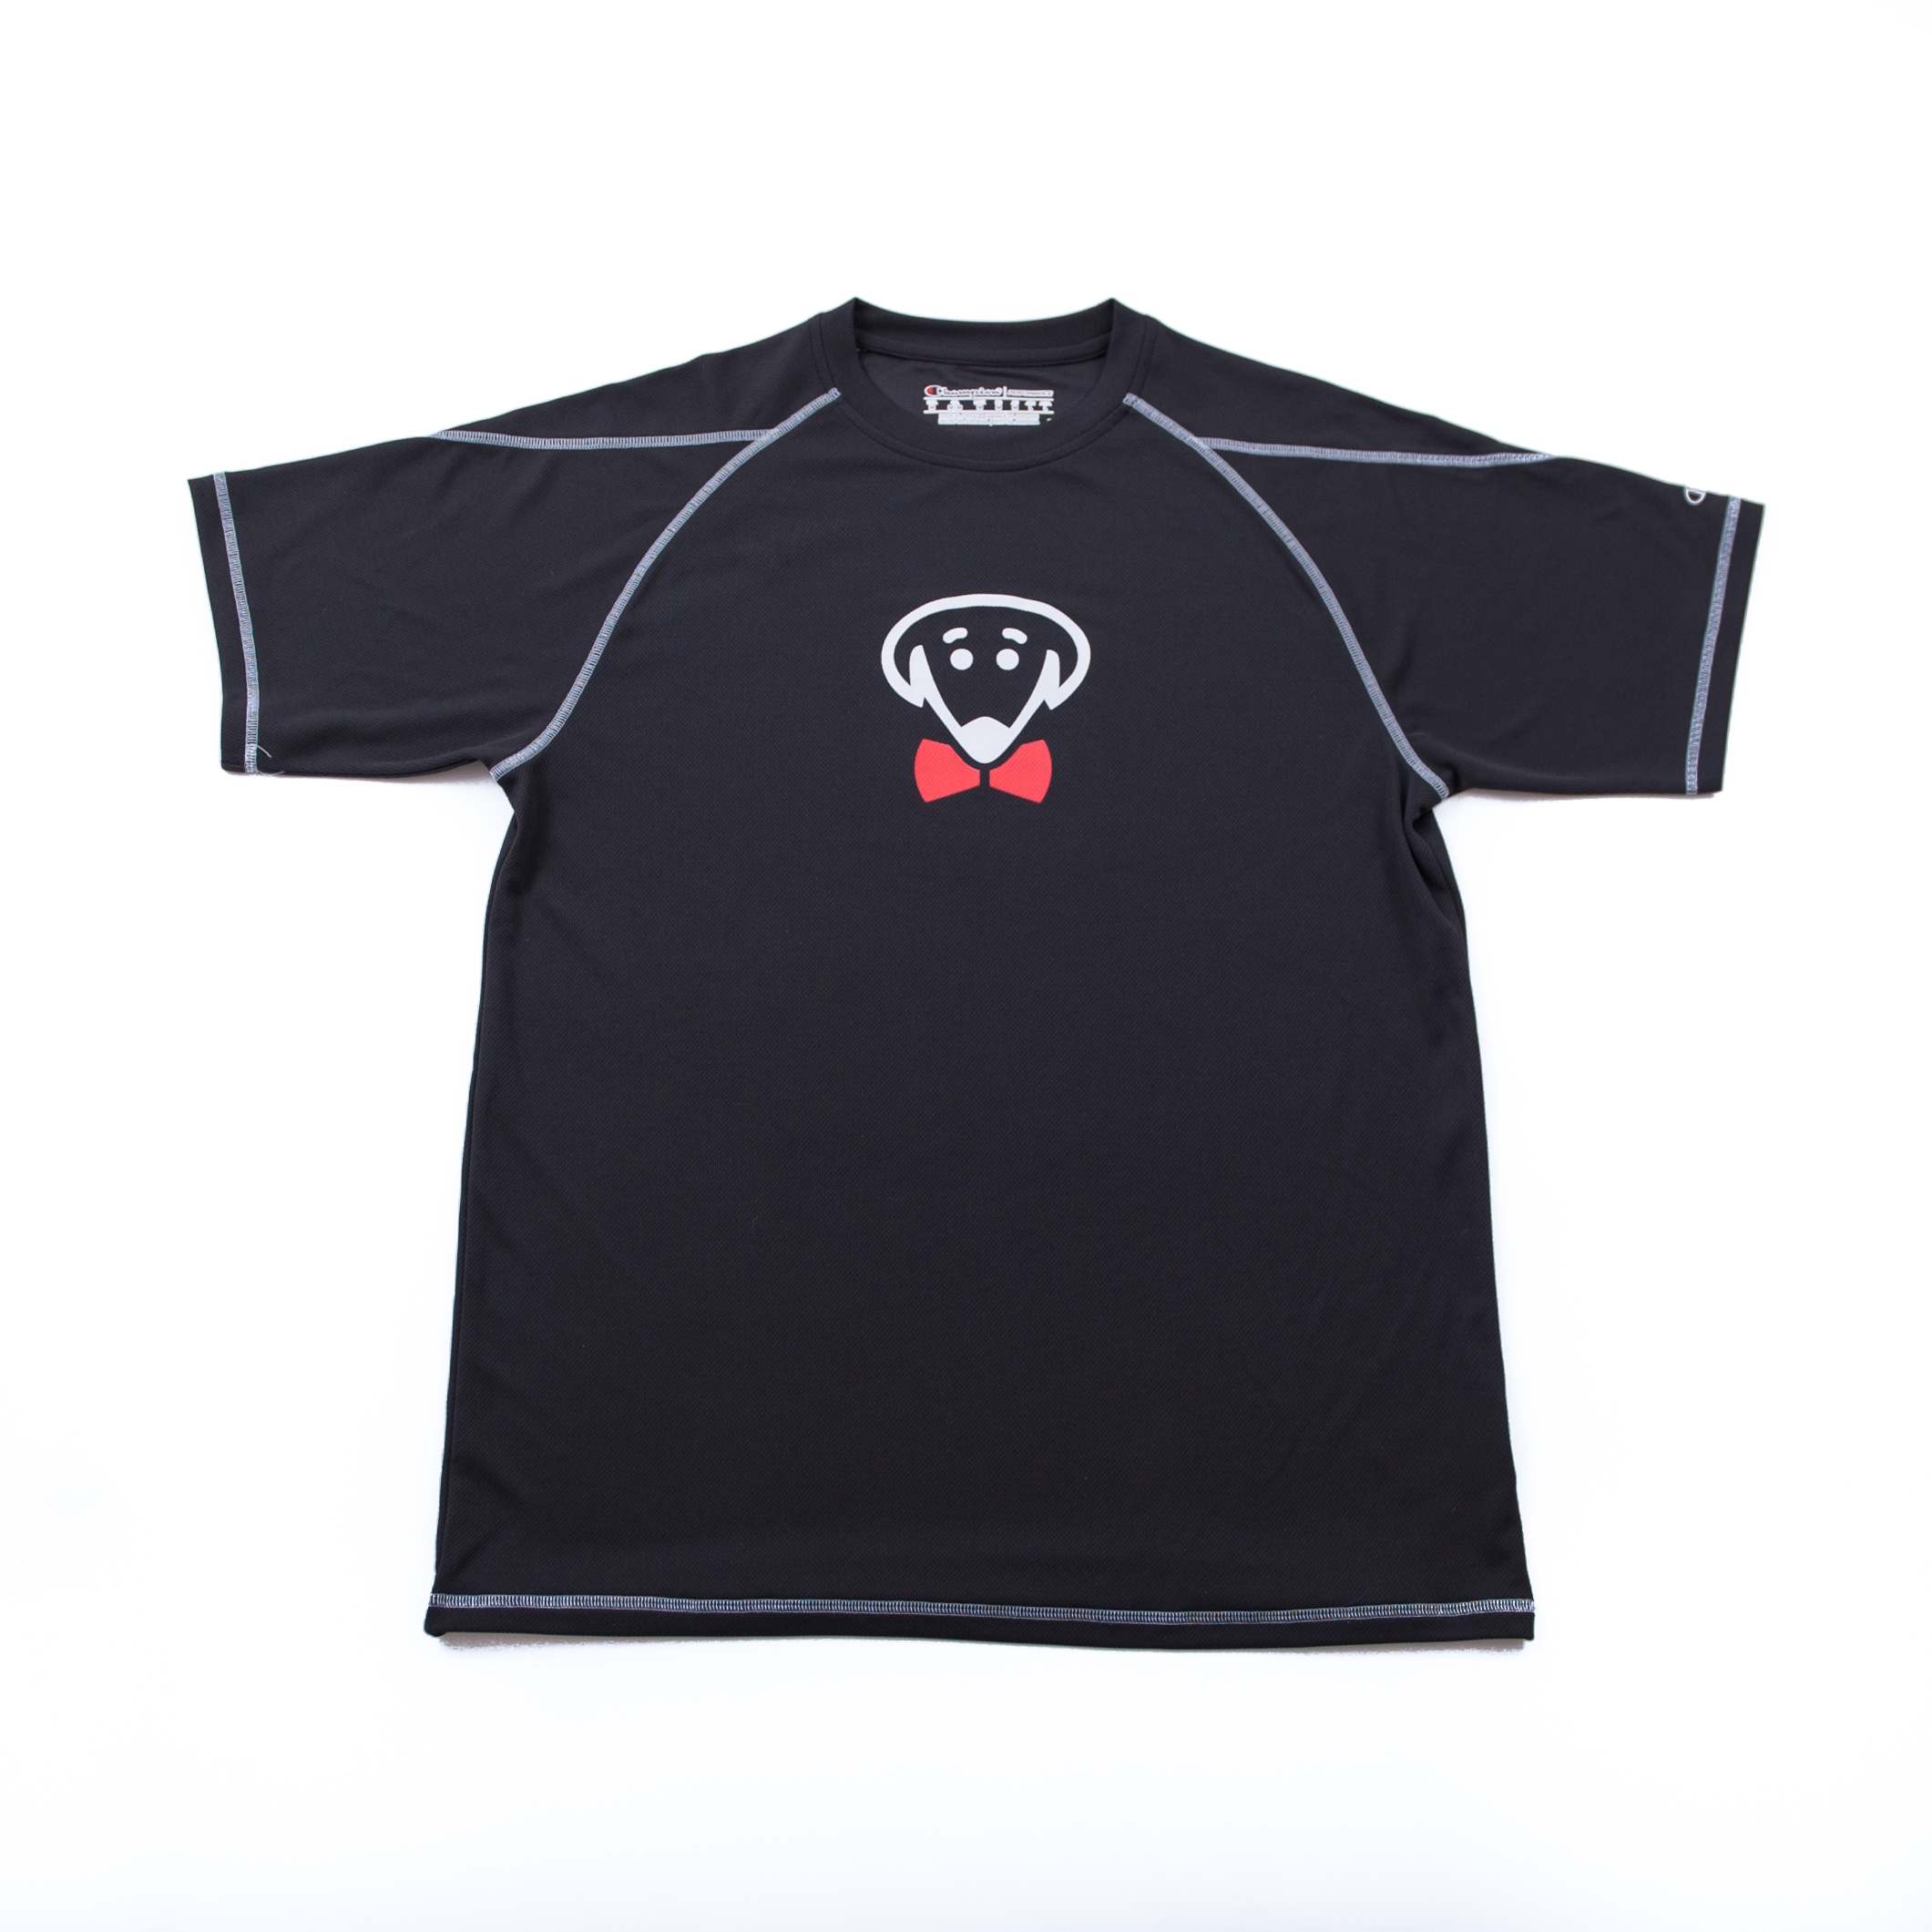 Bow Ties Black Dry-Fit T-shirt